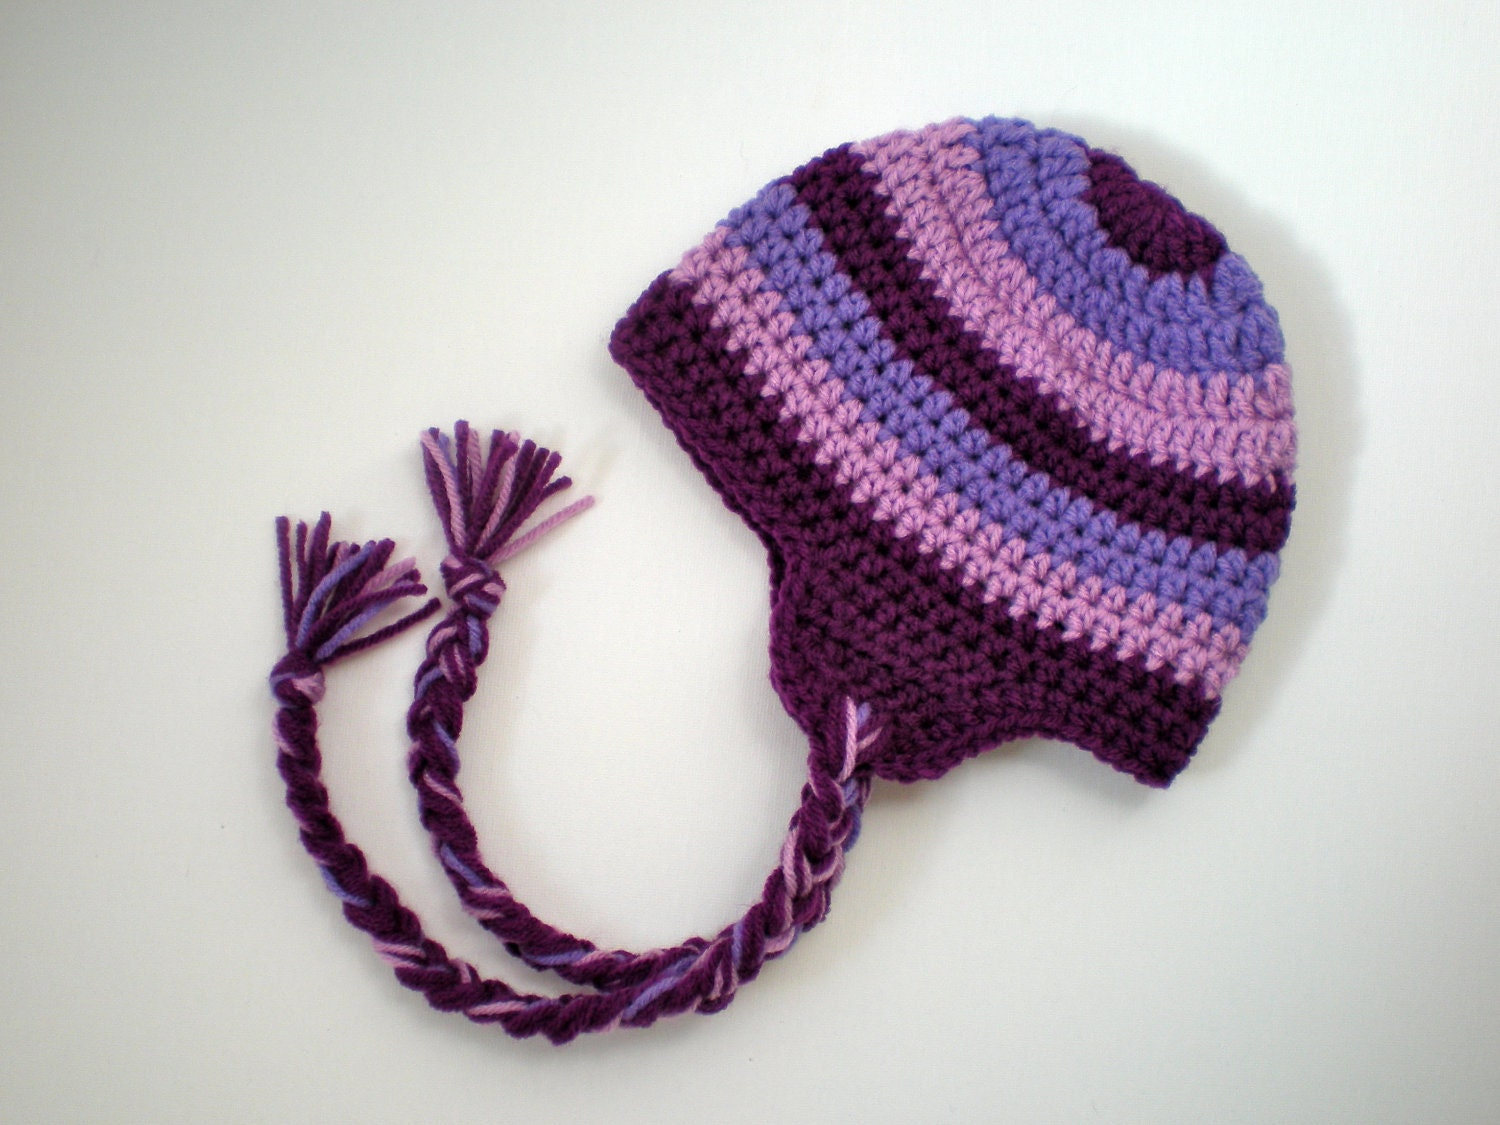 Crochet Beanie Pattern Striped : PATTERN: Striped Earflap Hat Easy Crochet Sizes Newborn to